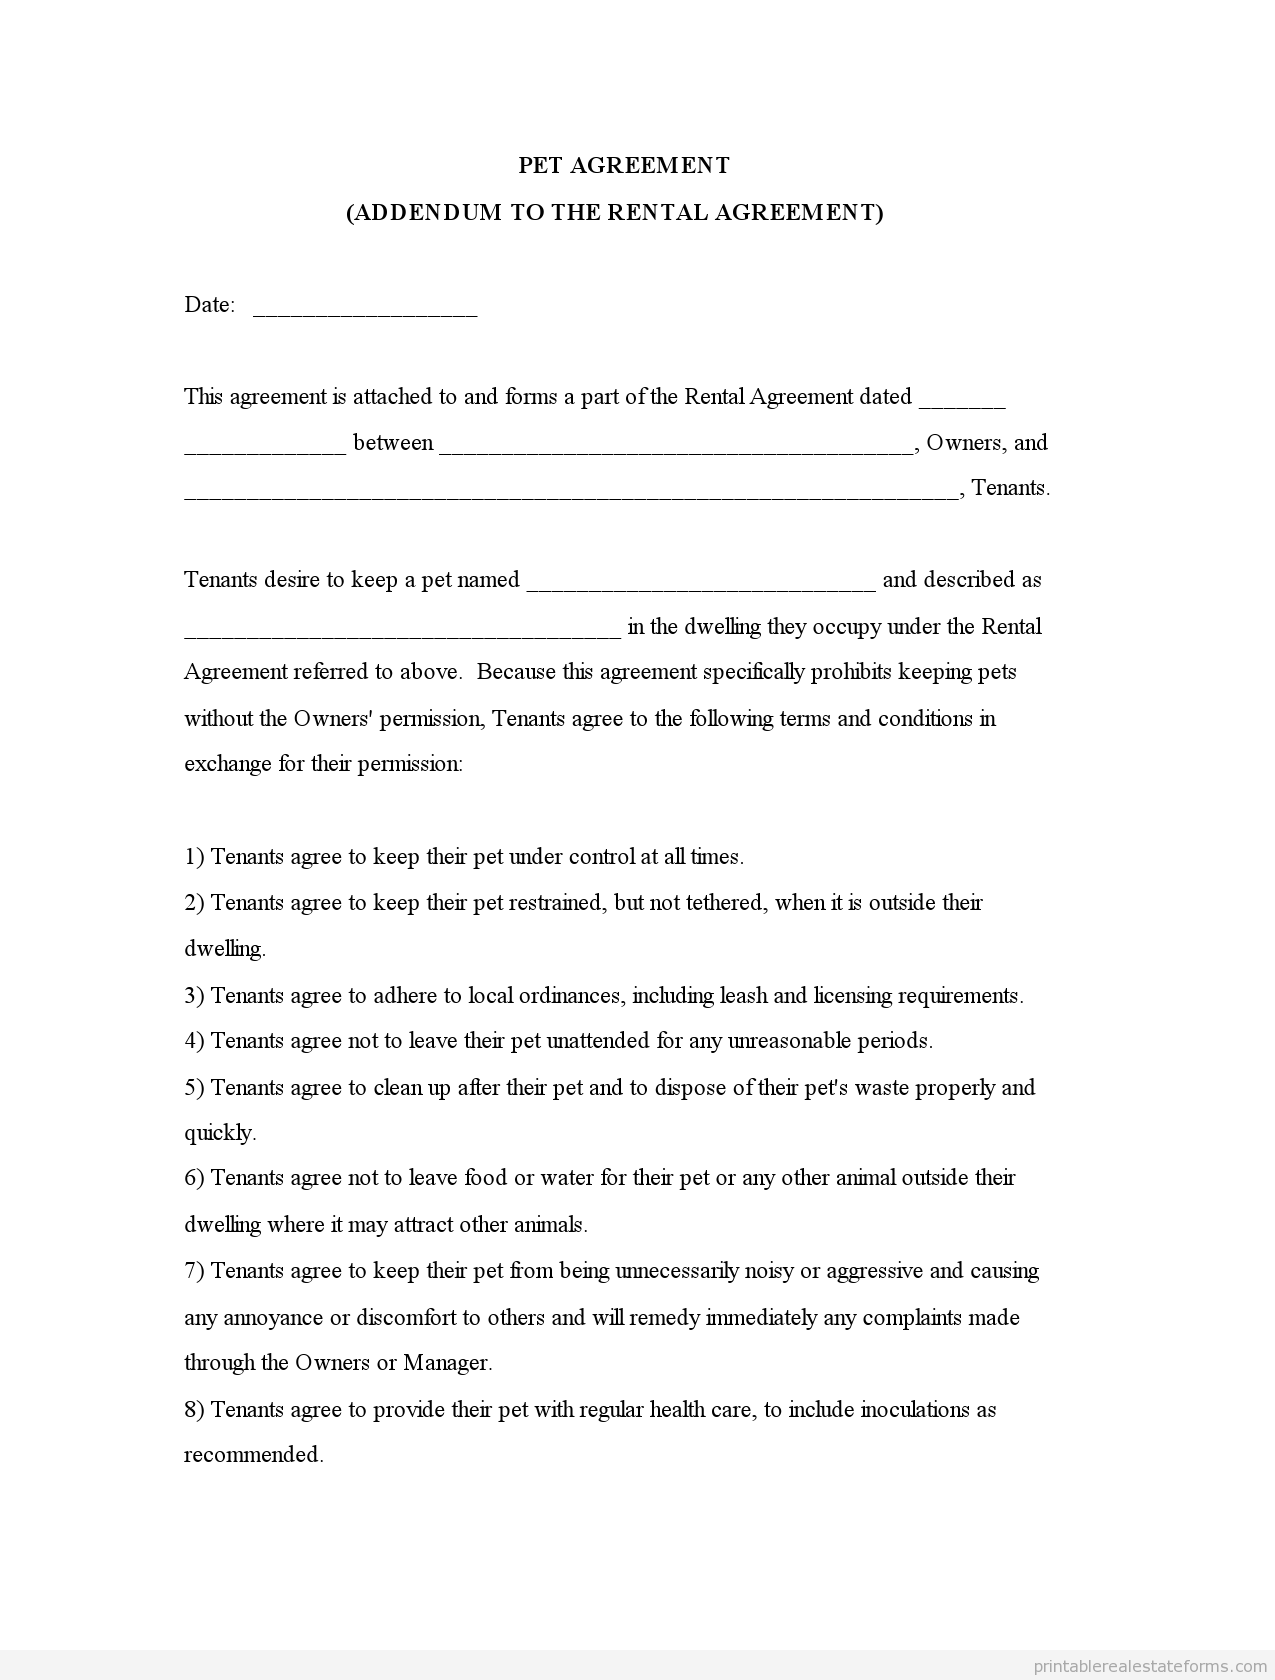 Pet Agreement Rental Fill Online, Printable, Fillable, Blank